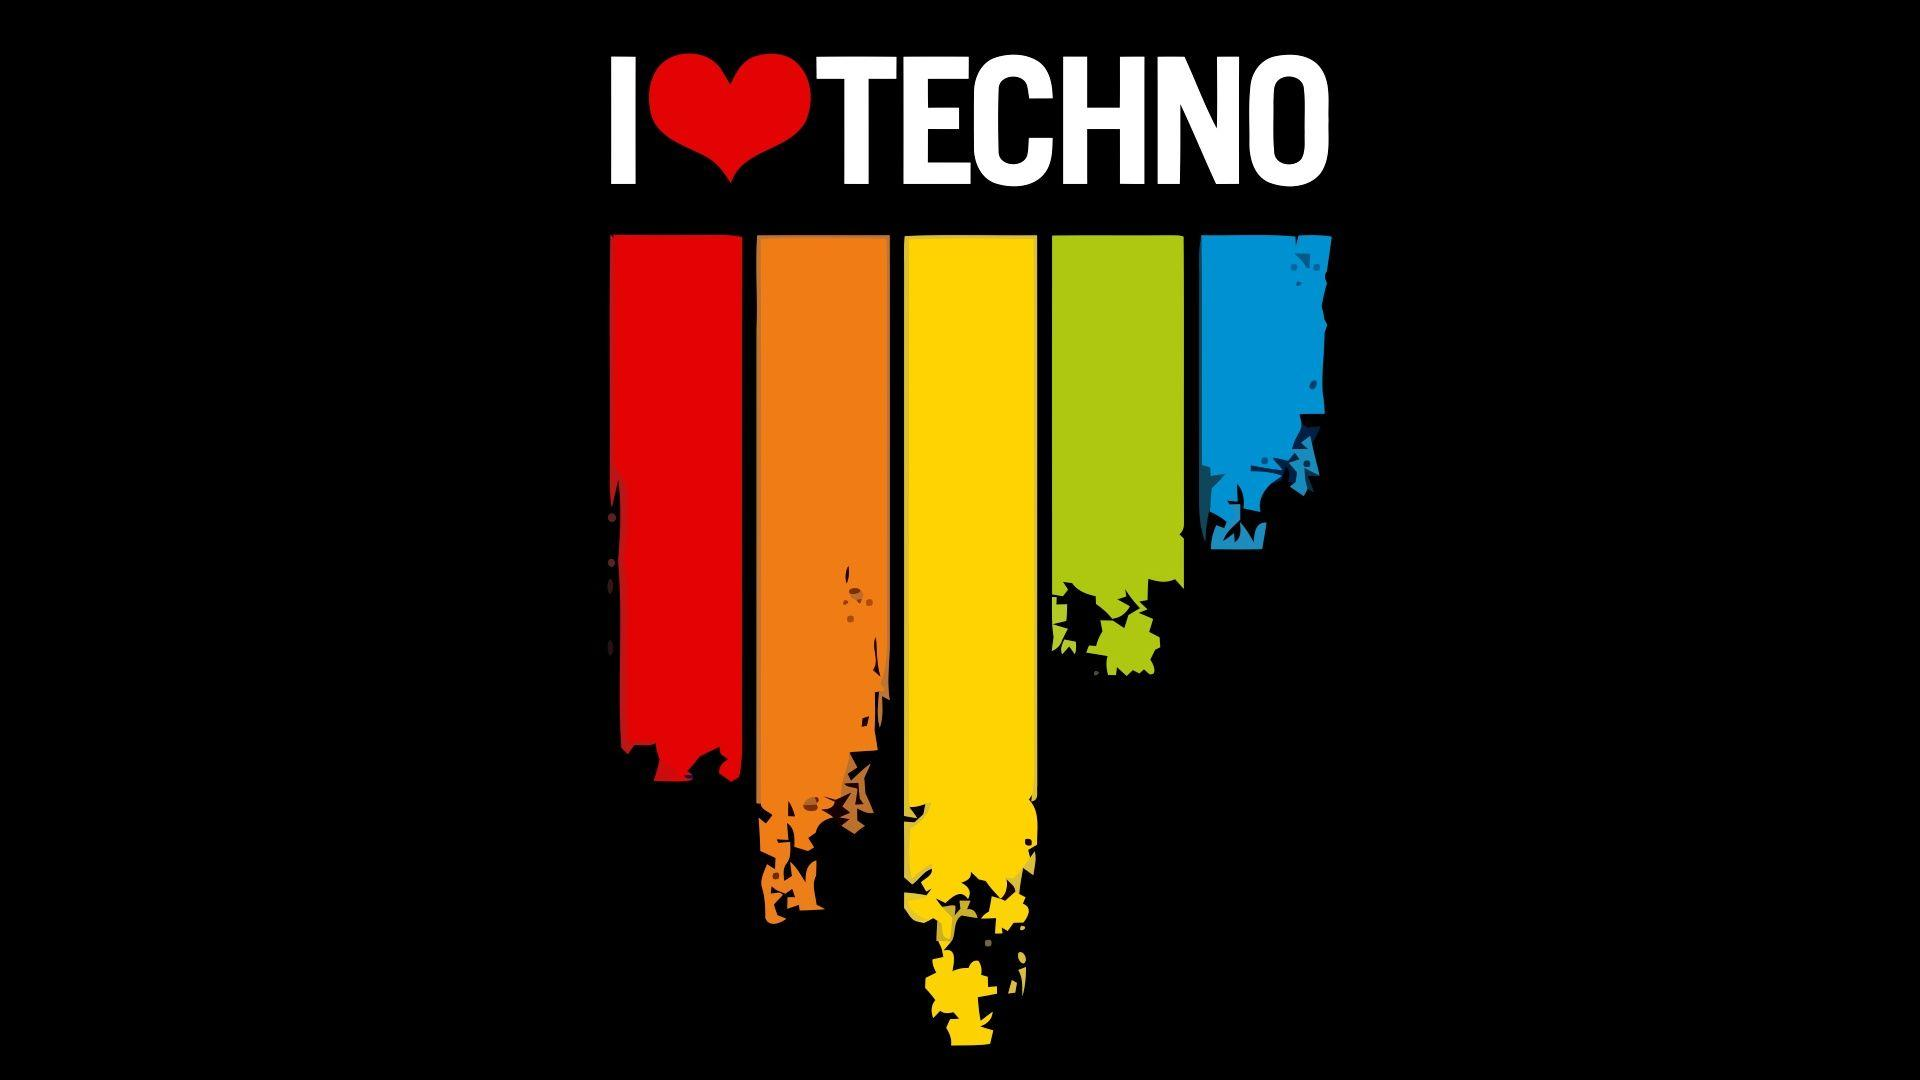 Techno Music Wallpapers Wallpaper Cave